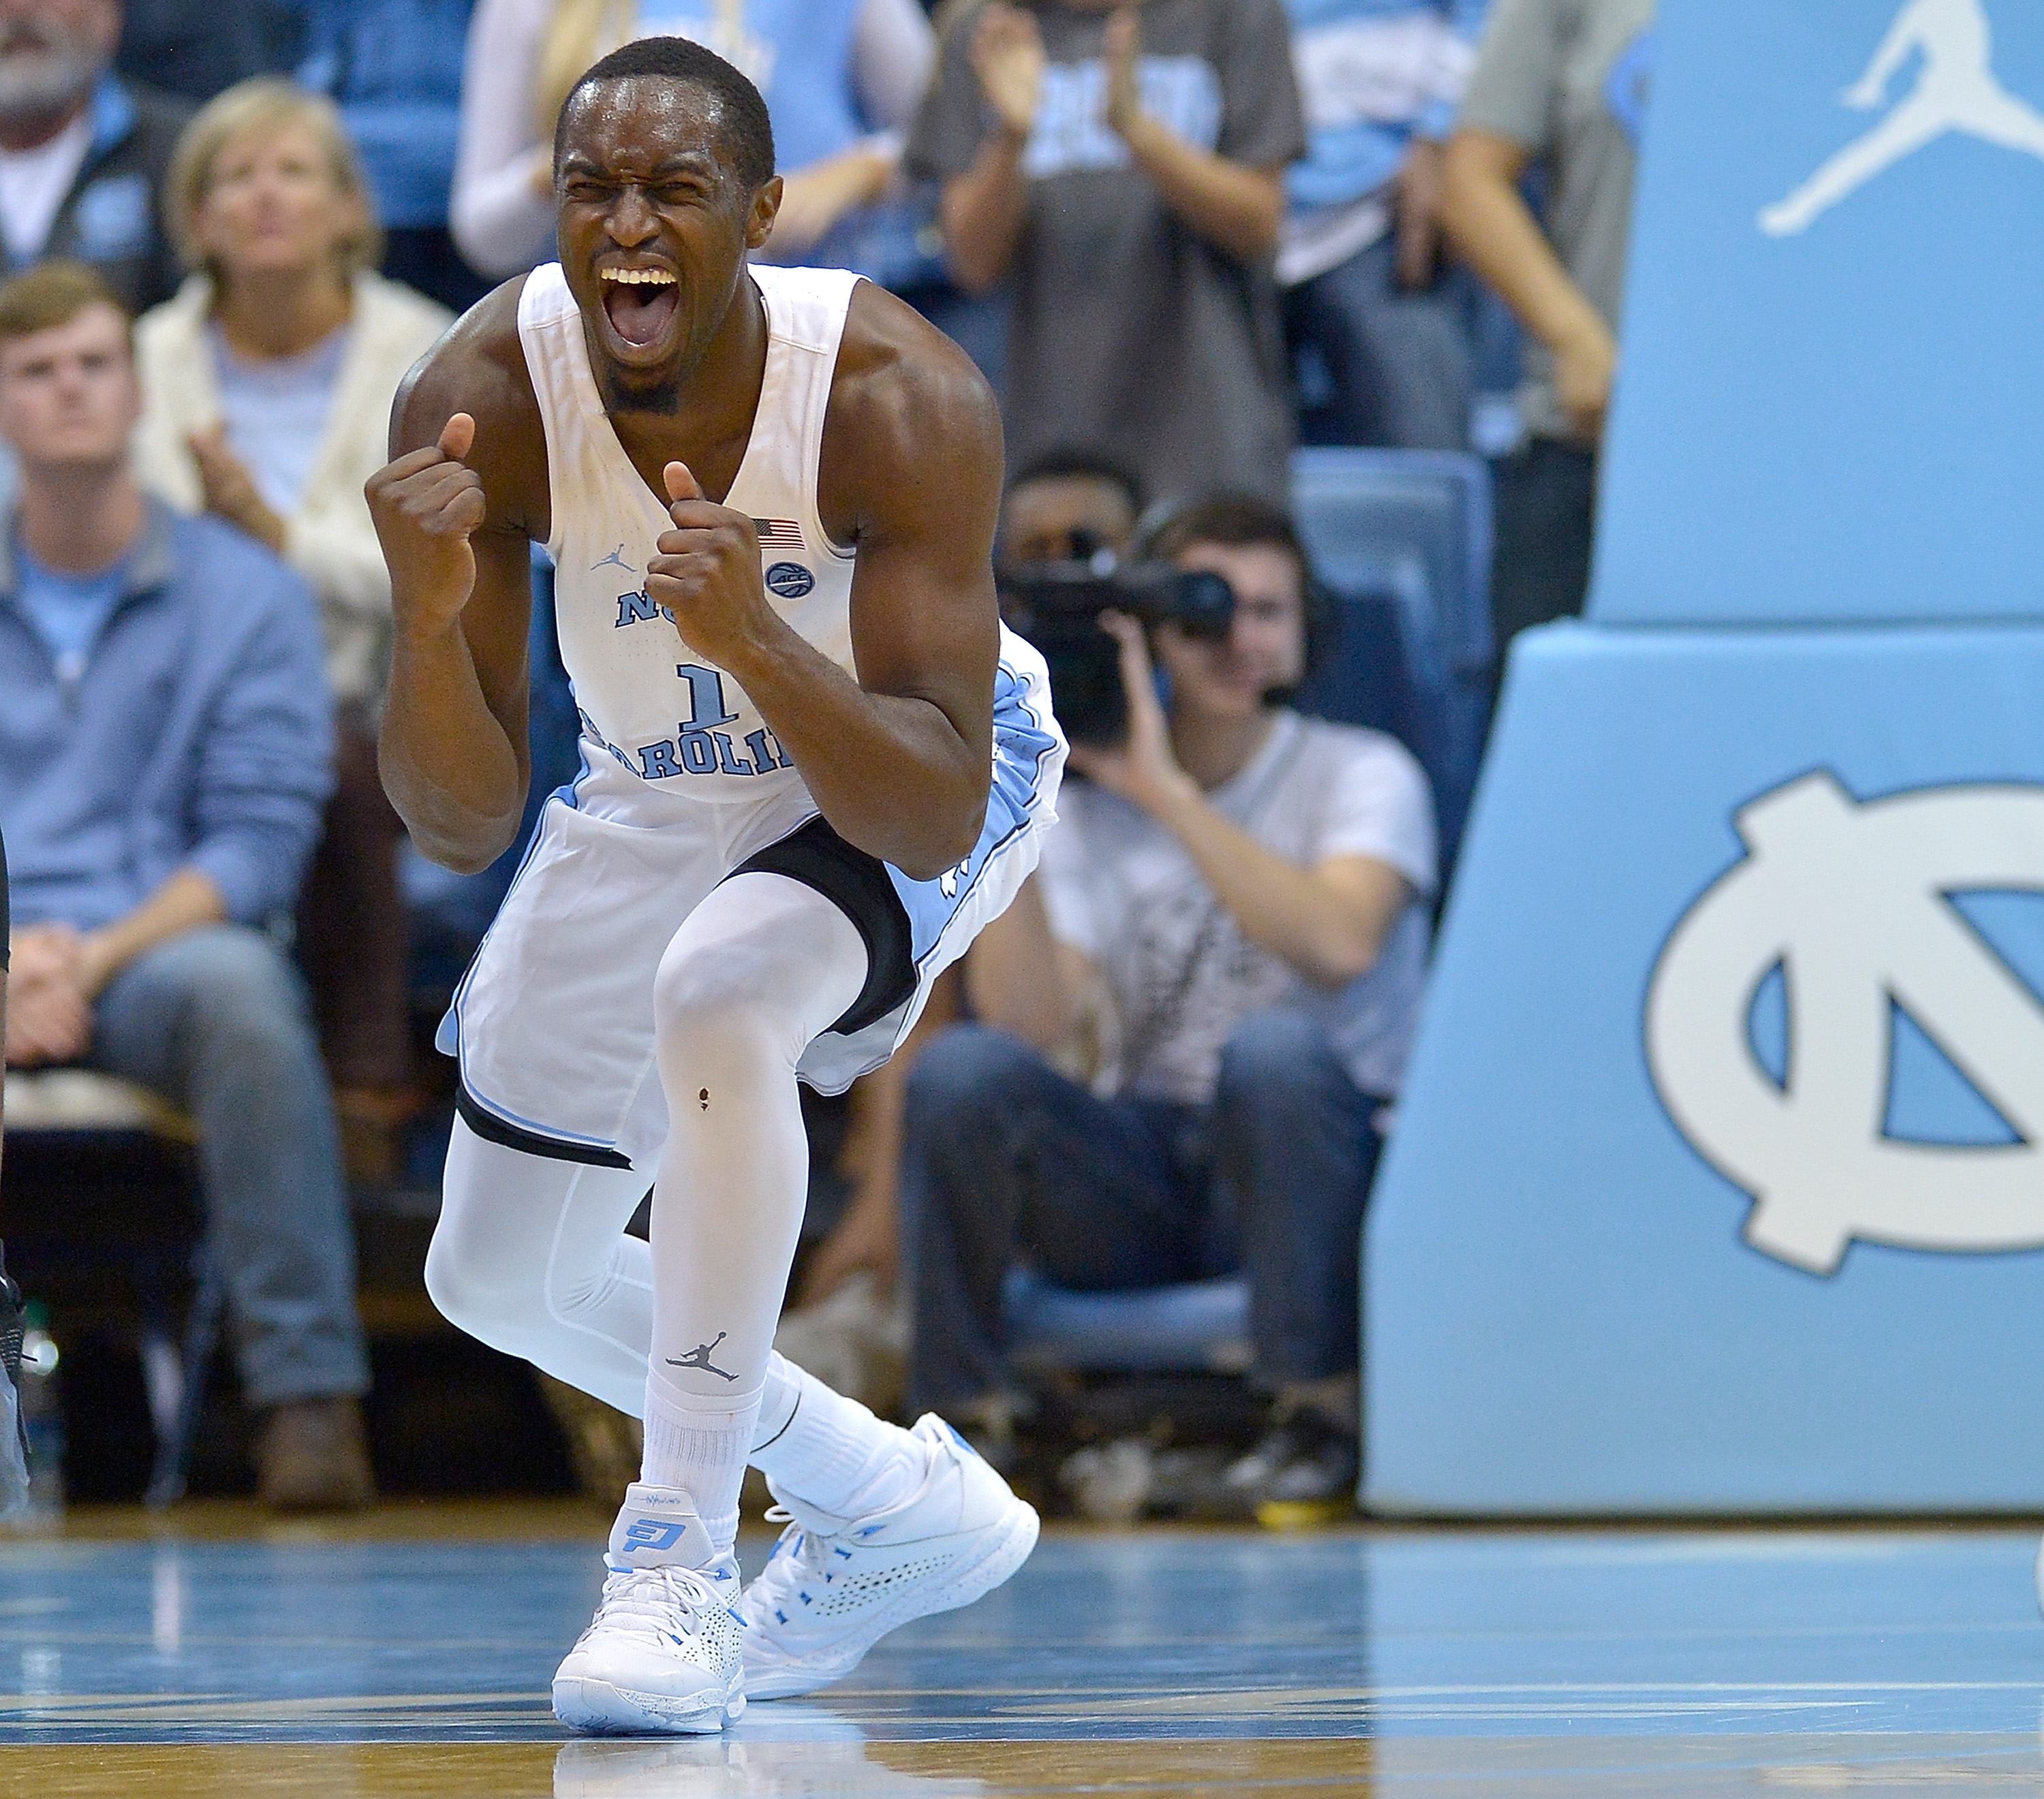 Concussion sidelines UNC's Bradley for Florida State game